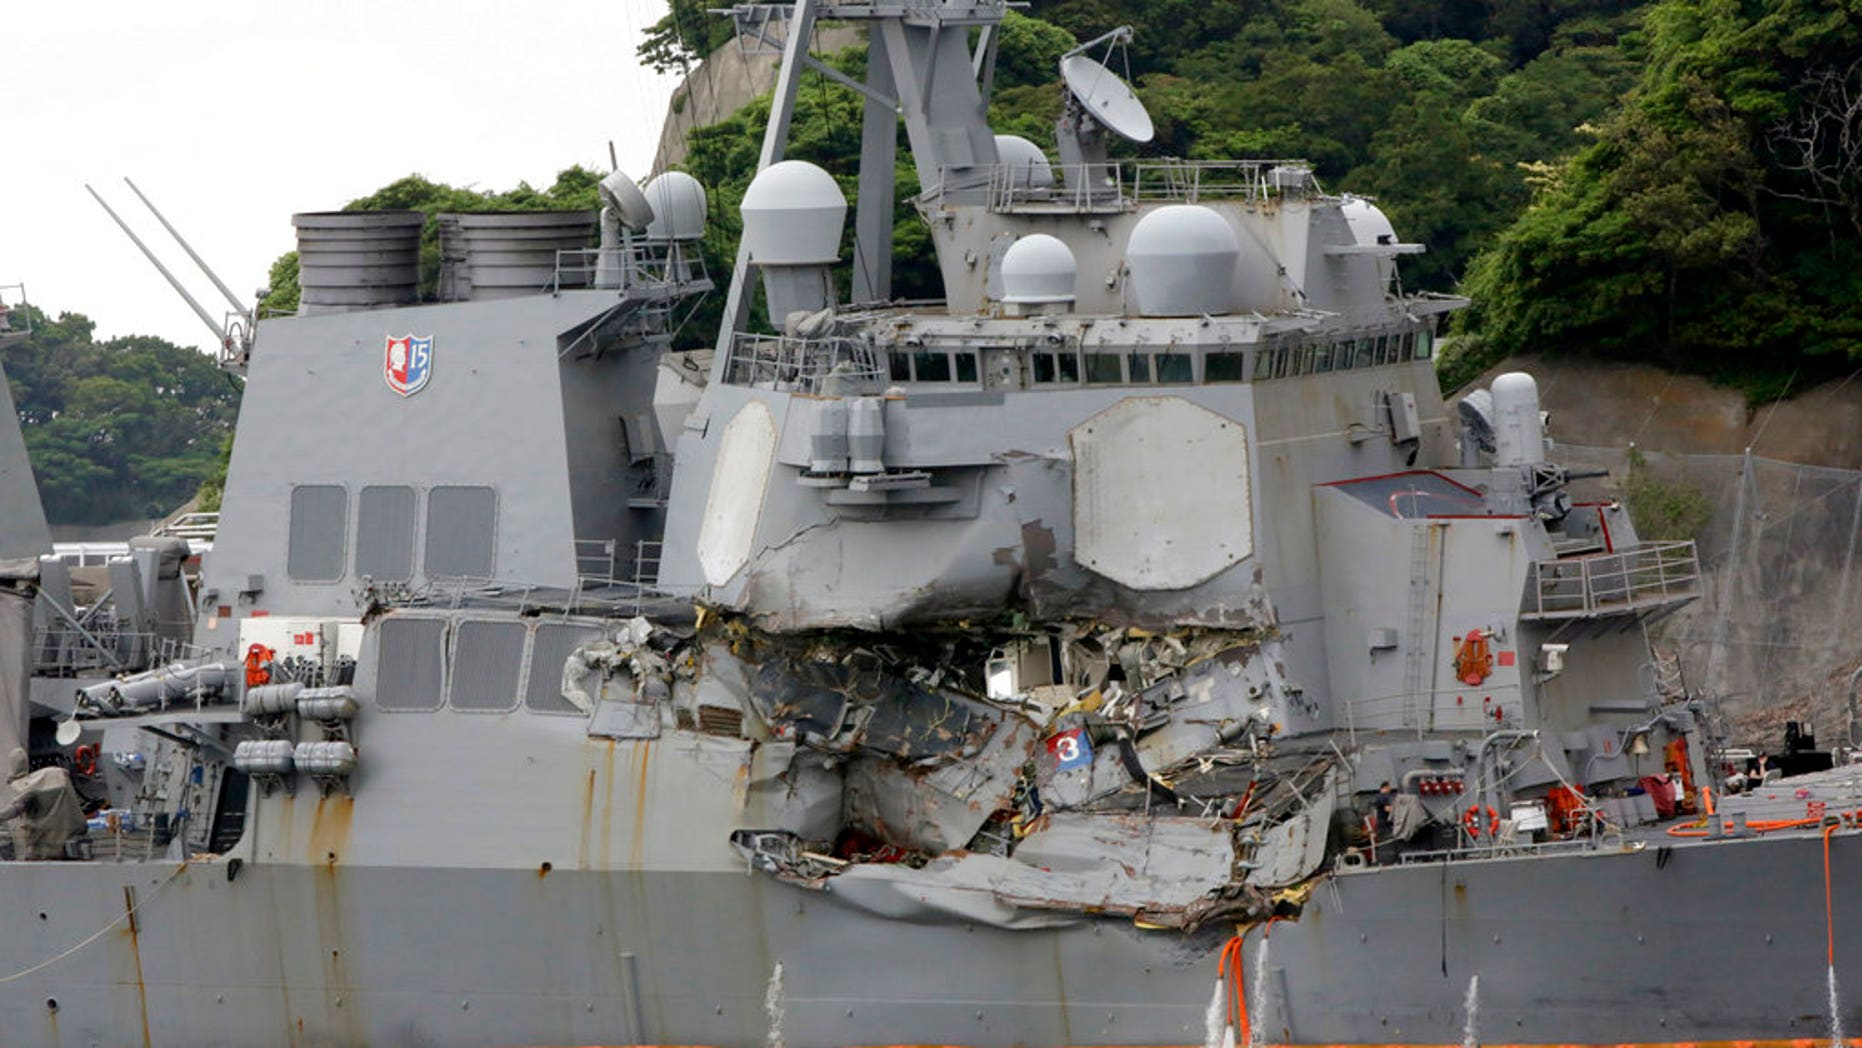 In this June 18, 2017, photo, damaged USS Fitzgerald is docked at the U.S. Naval base in Yokosuka, southwest of Tokyo, after colliding with Philippine-flagged container ship ACX Crystal off Japan.